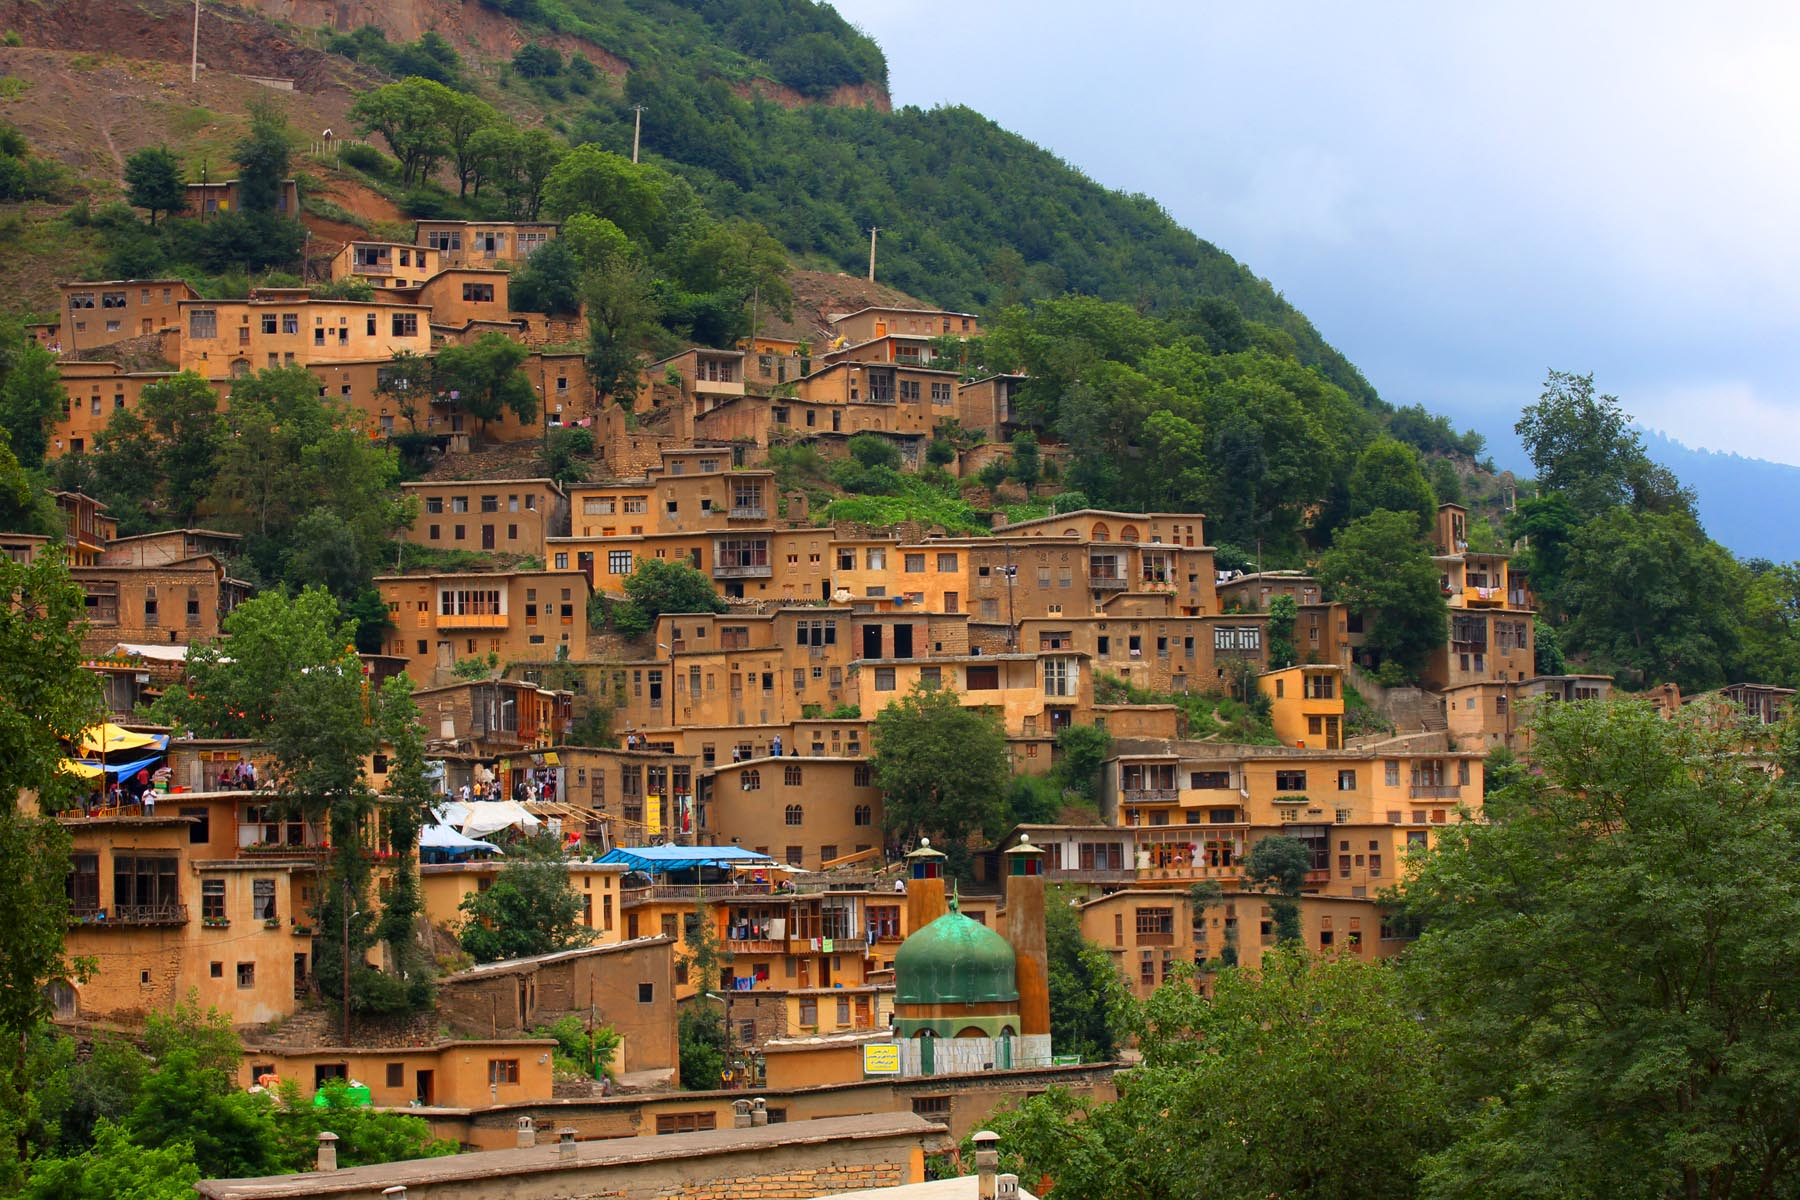 Masuleh Village in Gilan